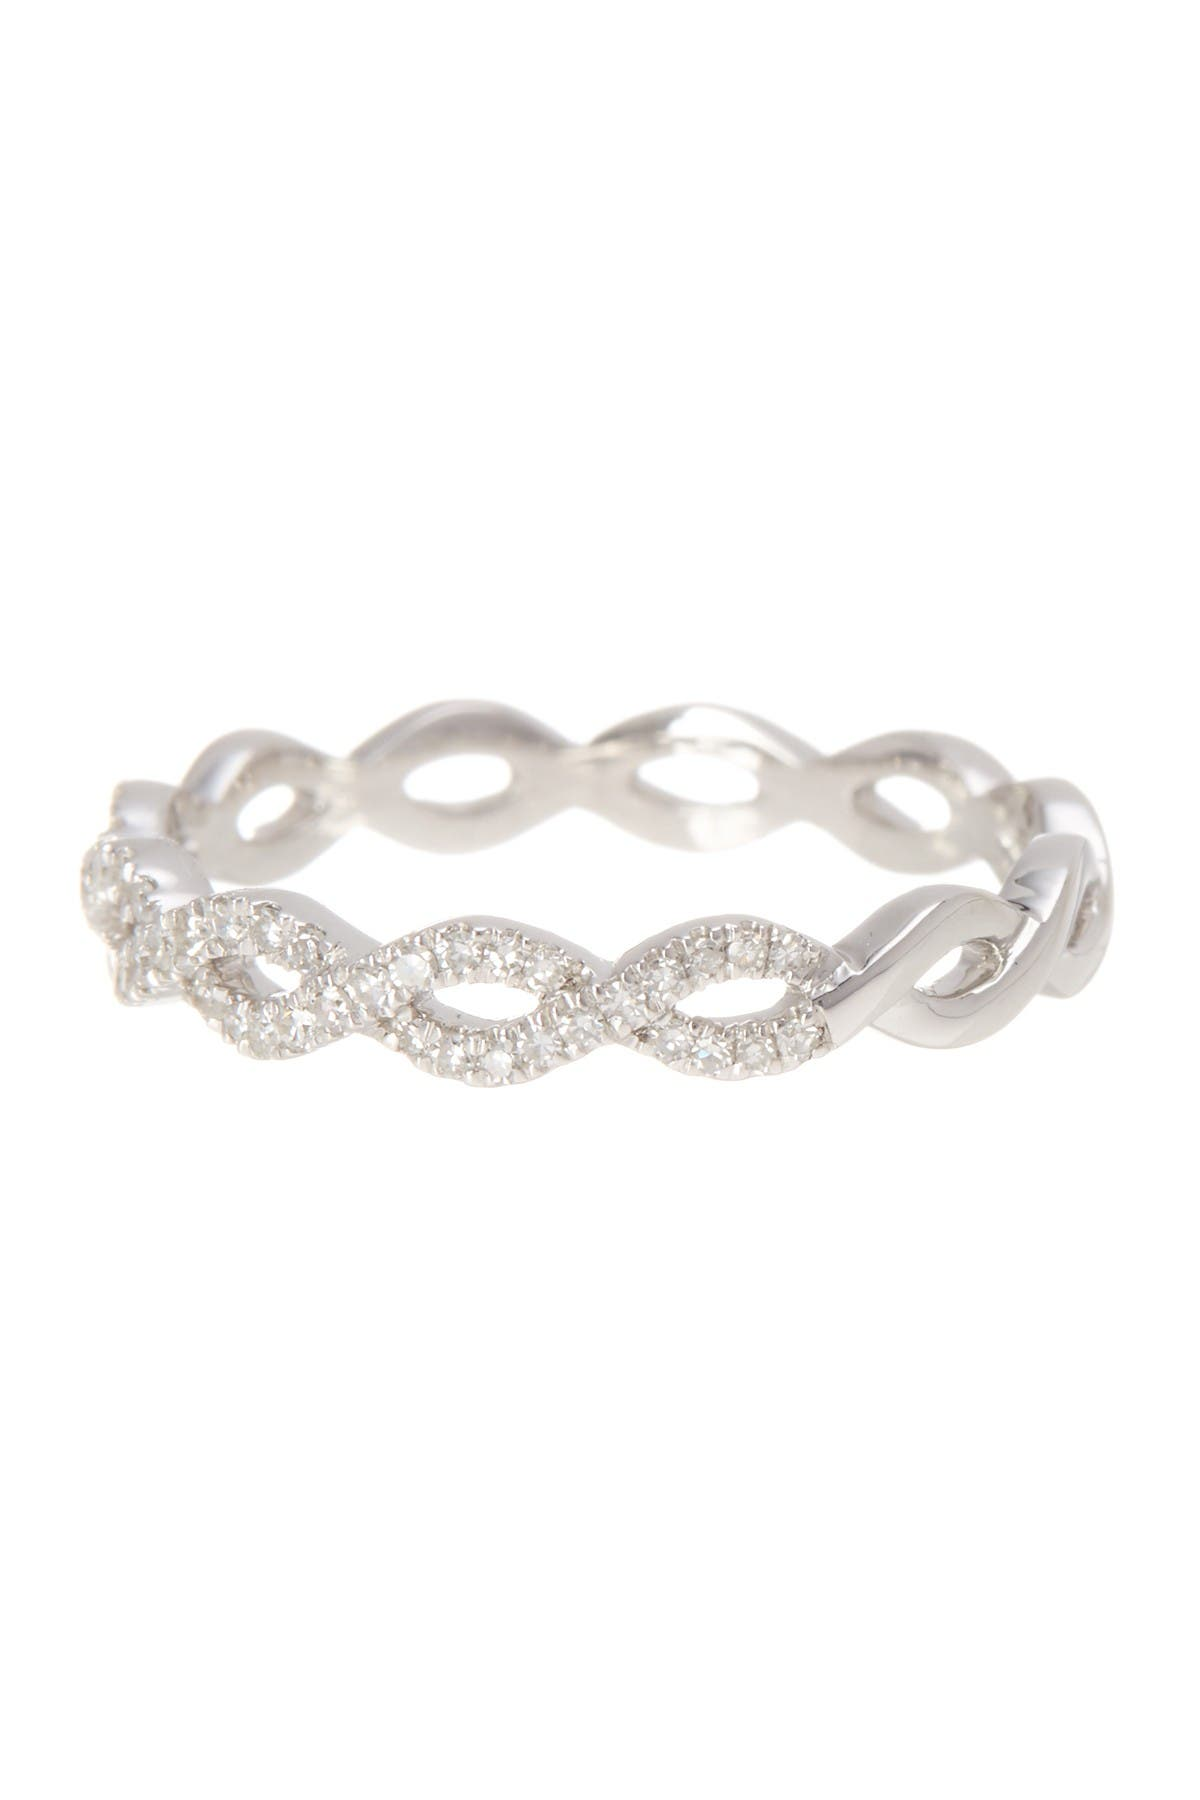 Image of Carriere Sterling Silver Diamond Weave Ring - 0.16 ctw